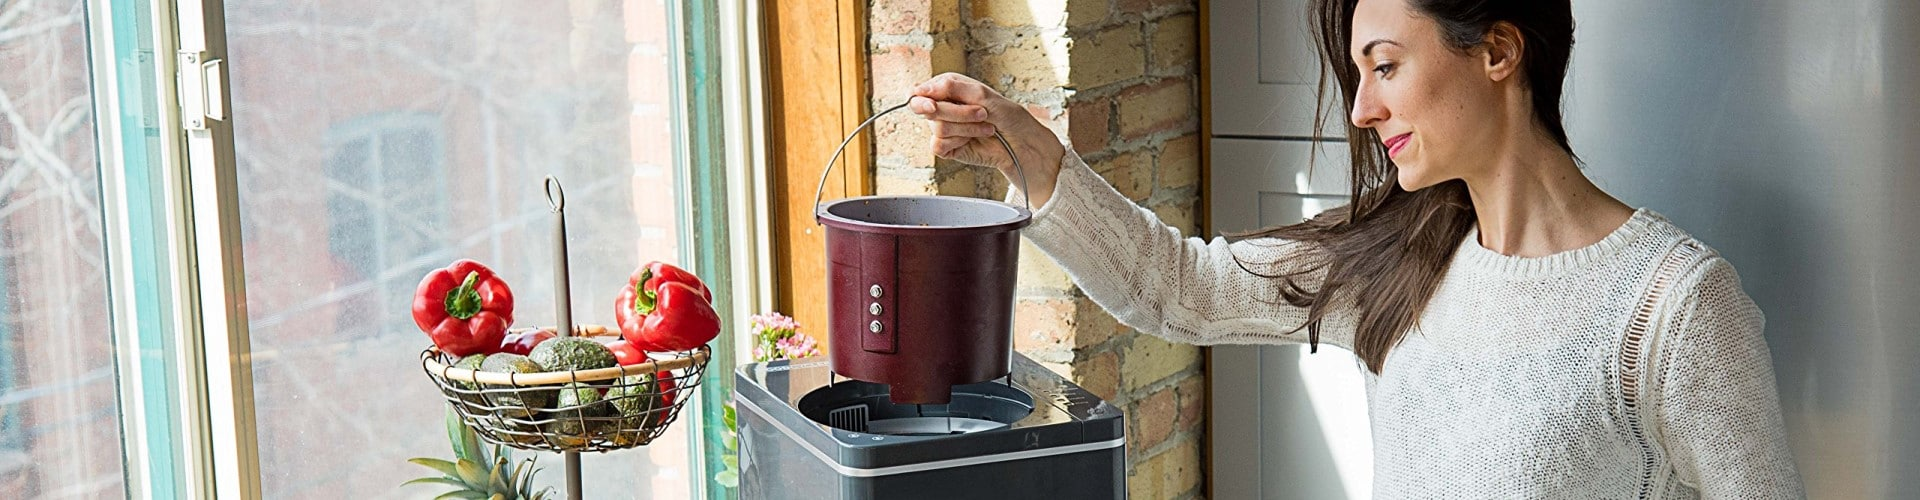 10 Best Kitchen Compost Bins – Make Better Use of Your Food Waste!